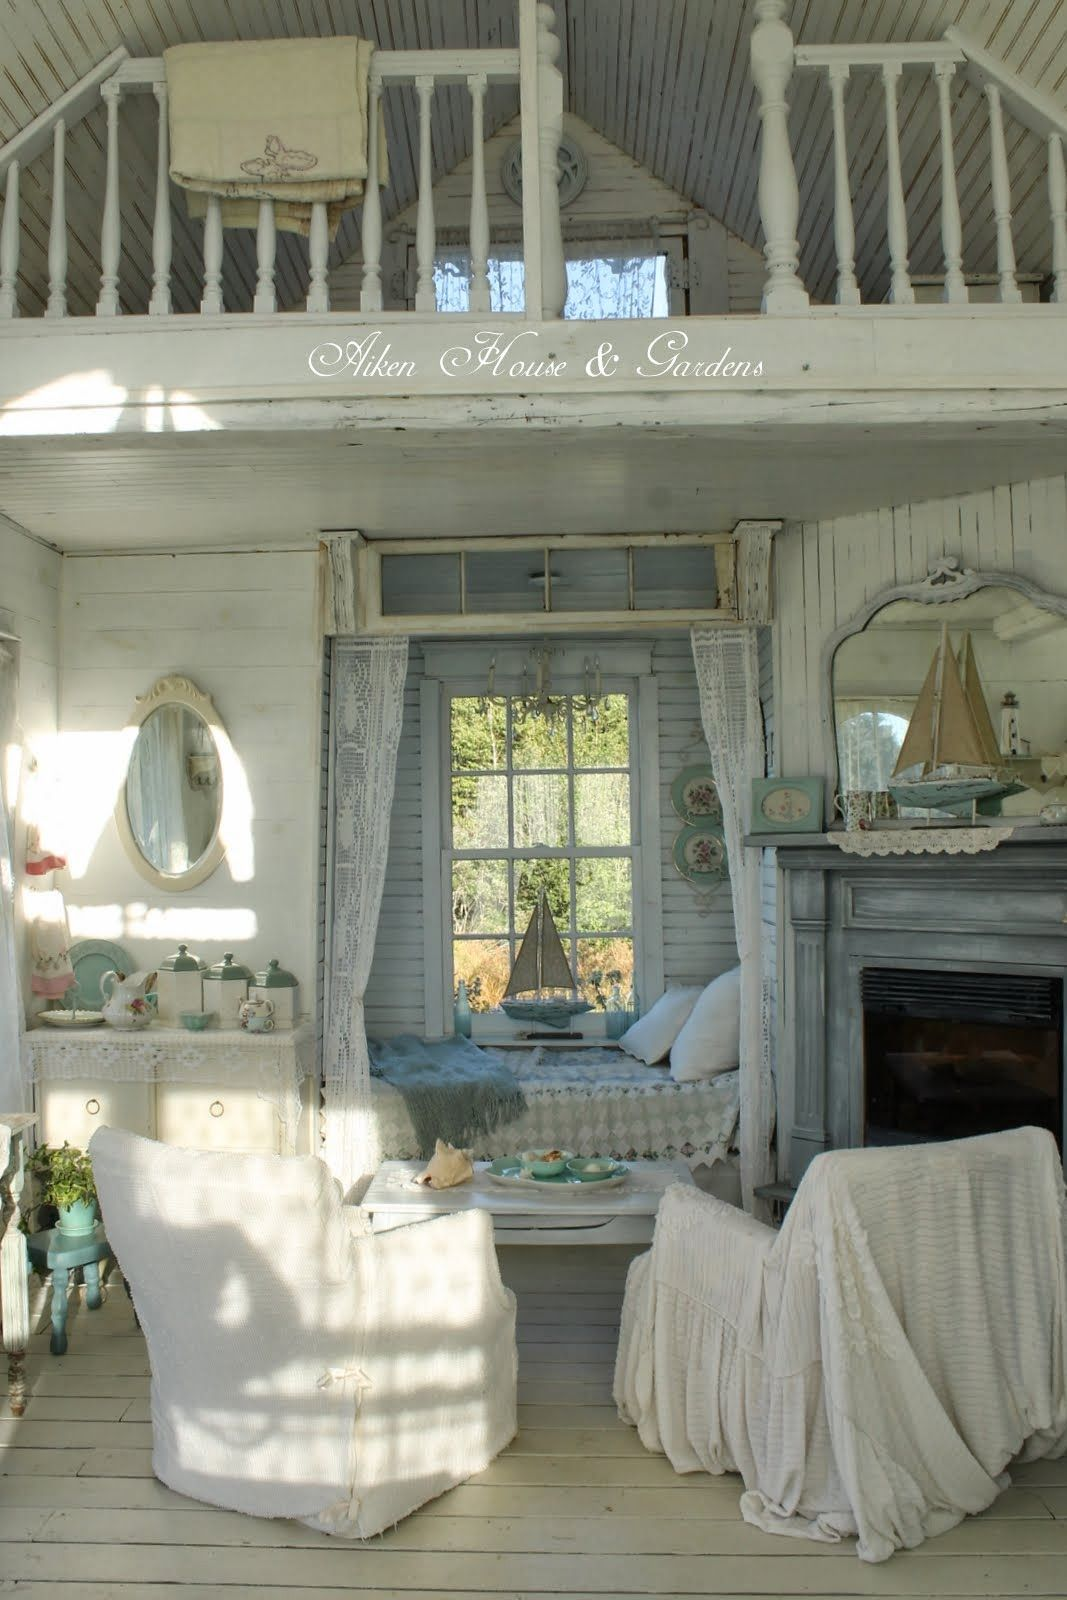 Small Living Room Interior Idea Decor Ideas With Grey Walls Aiken House & Gardens: The Boathouse....there's Something ...